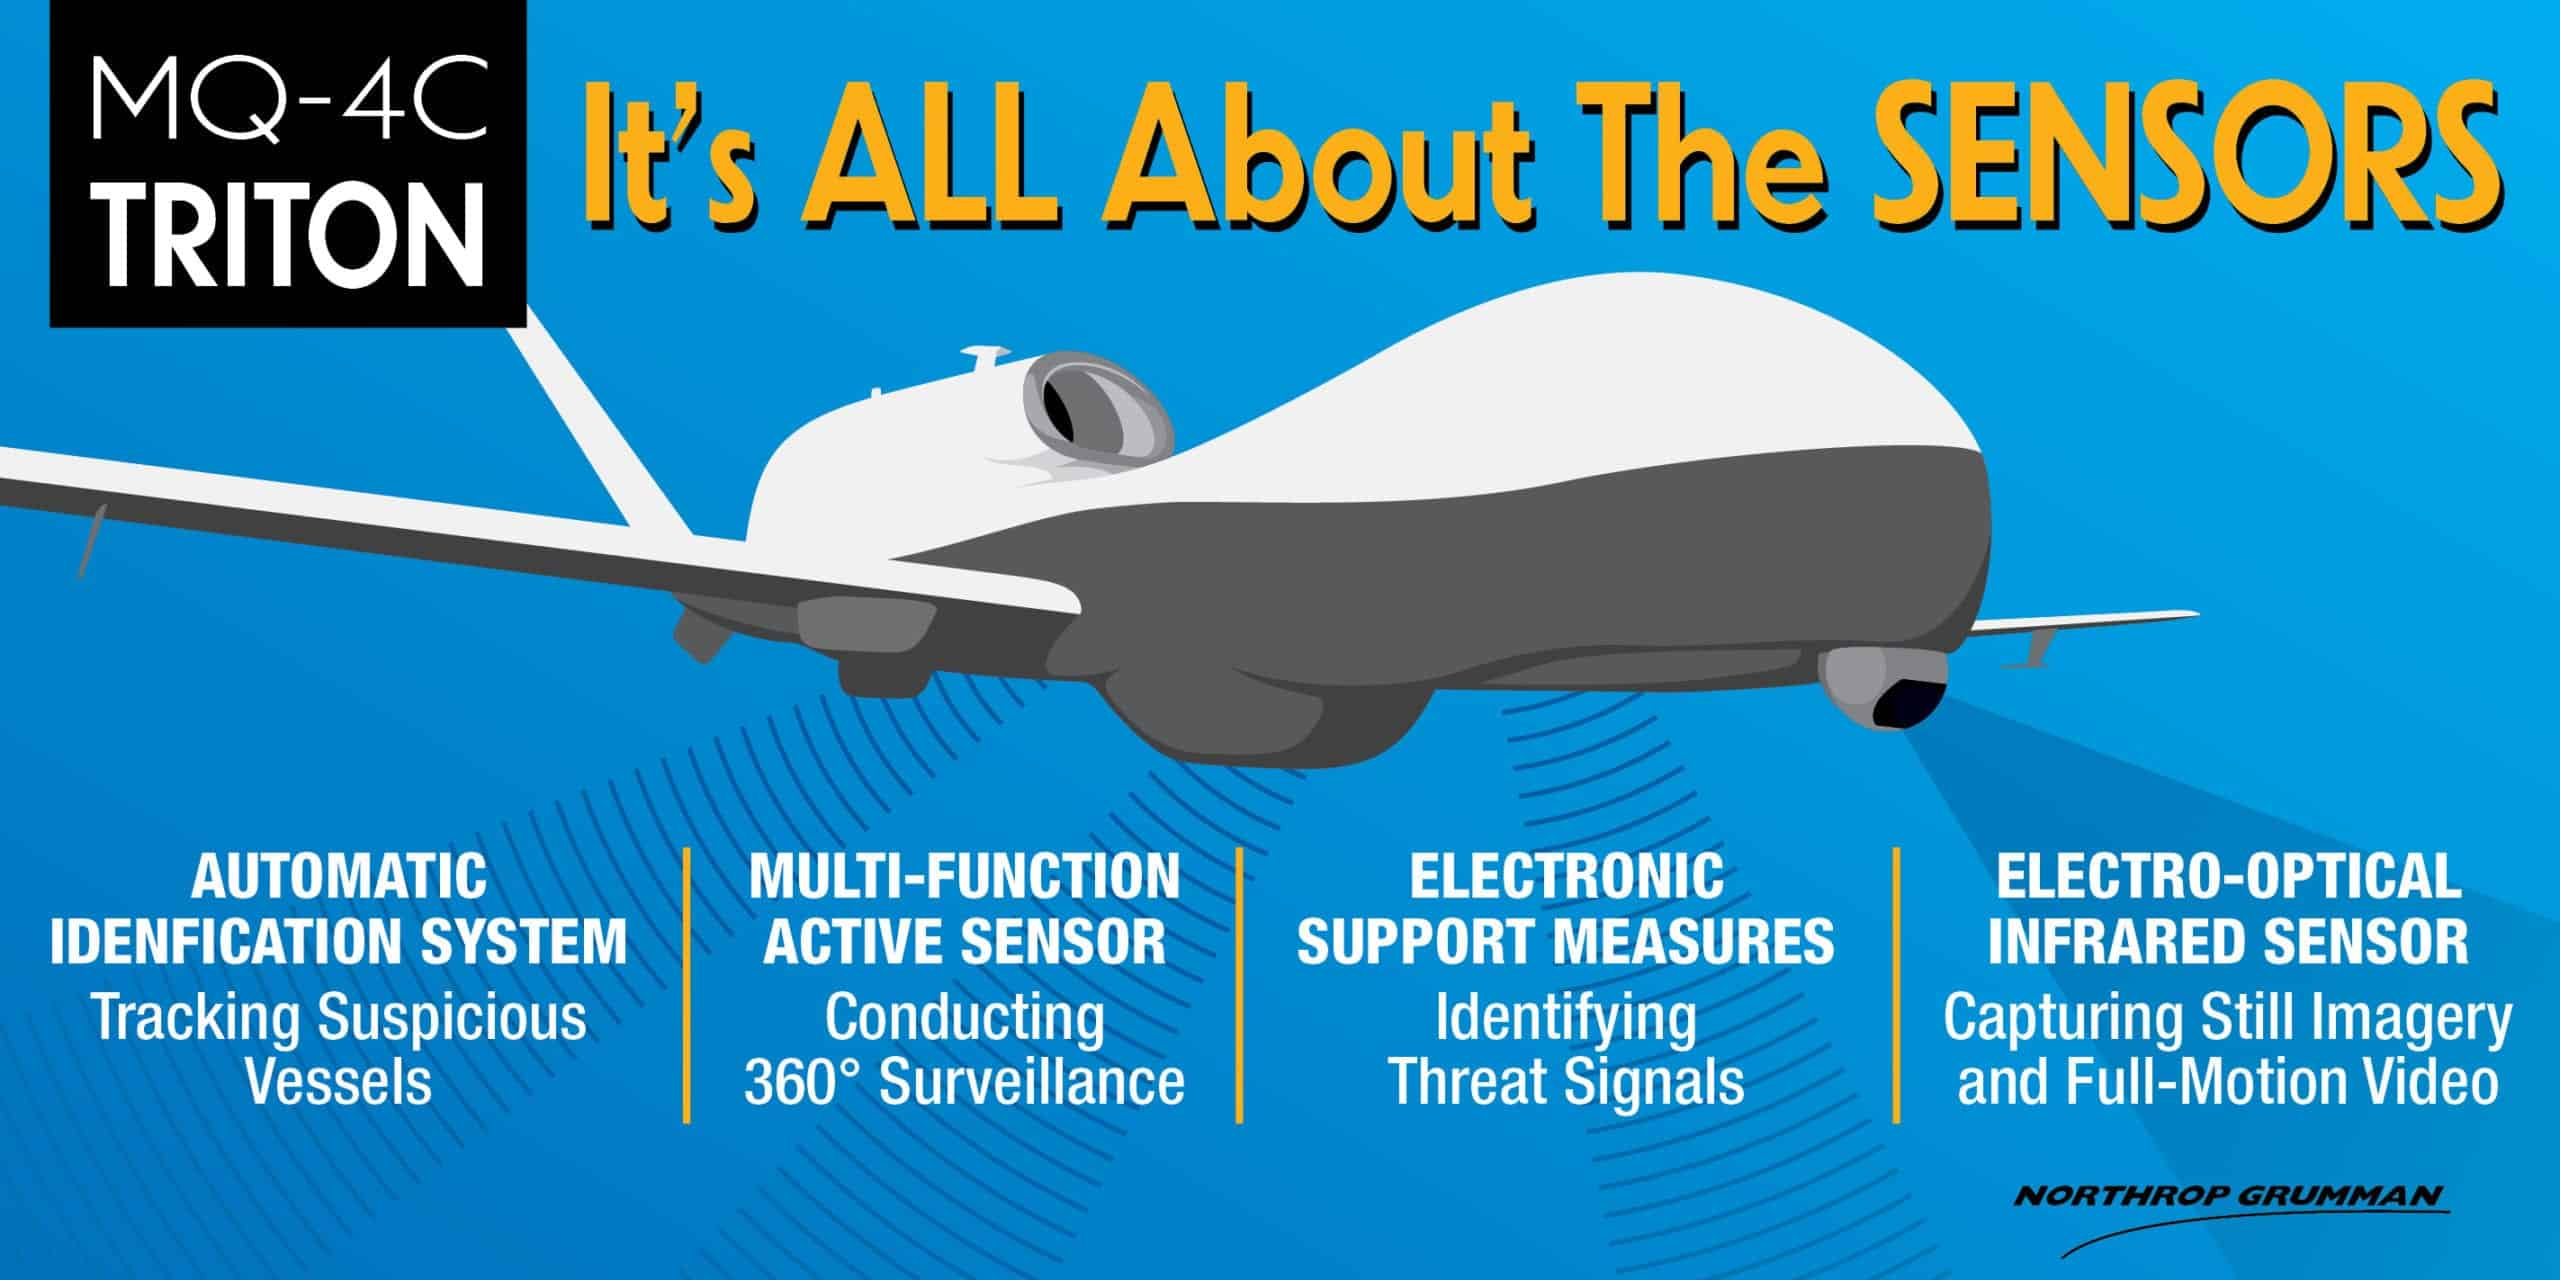 Triton Uas Infographic Unmanned Systems Technology